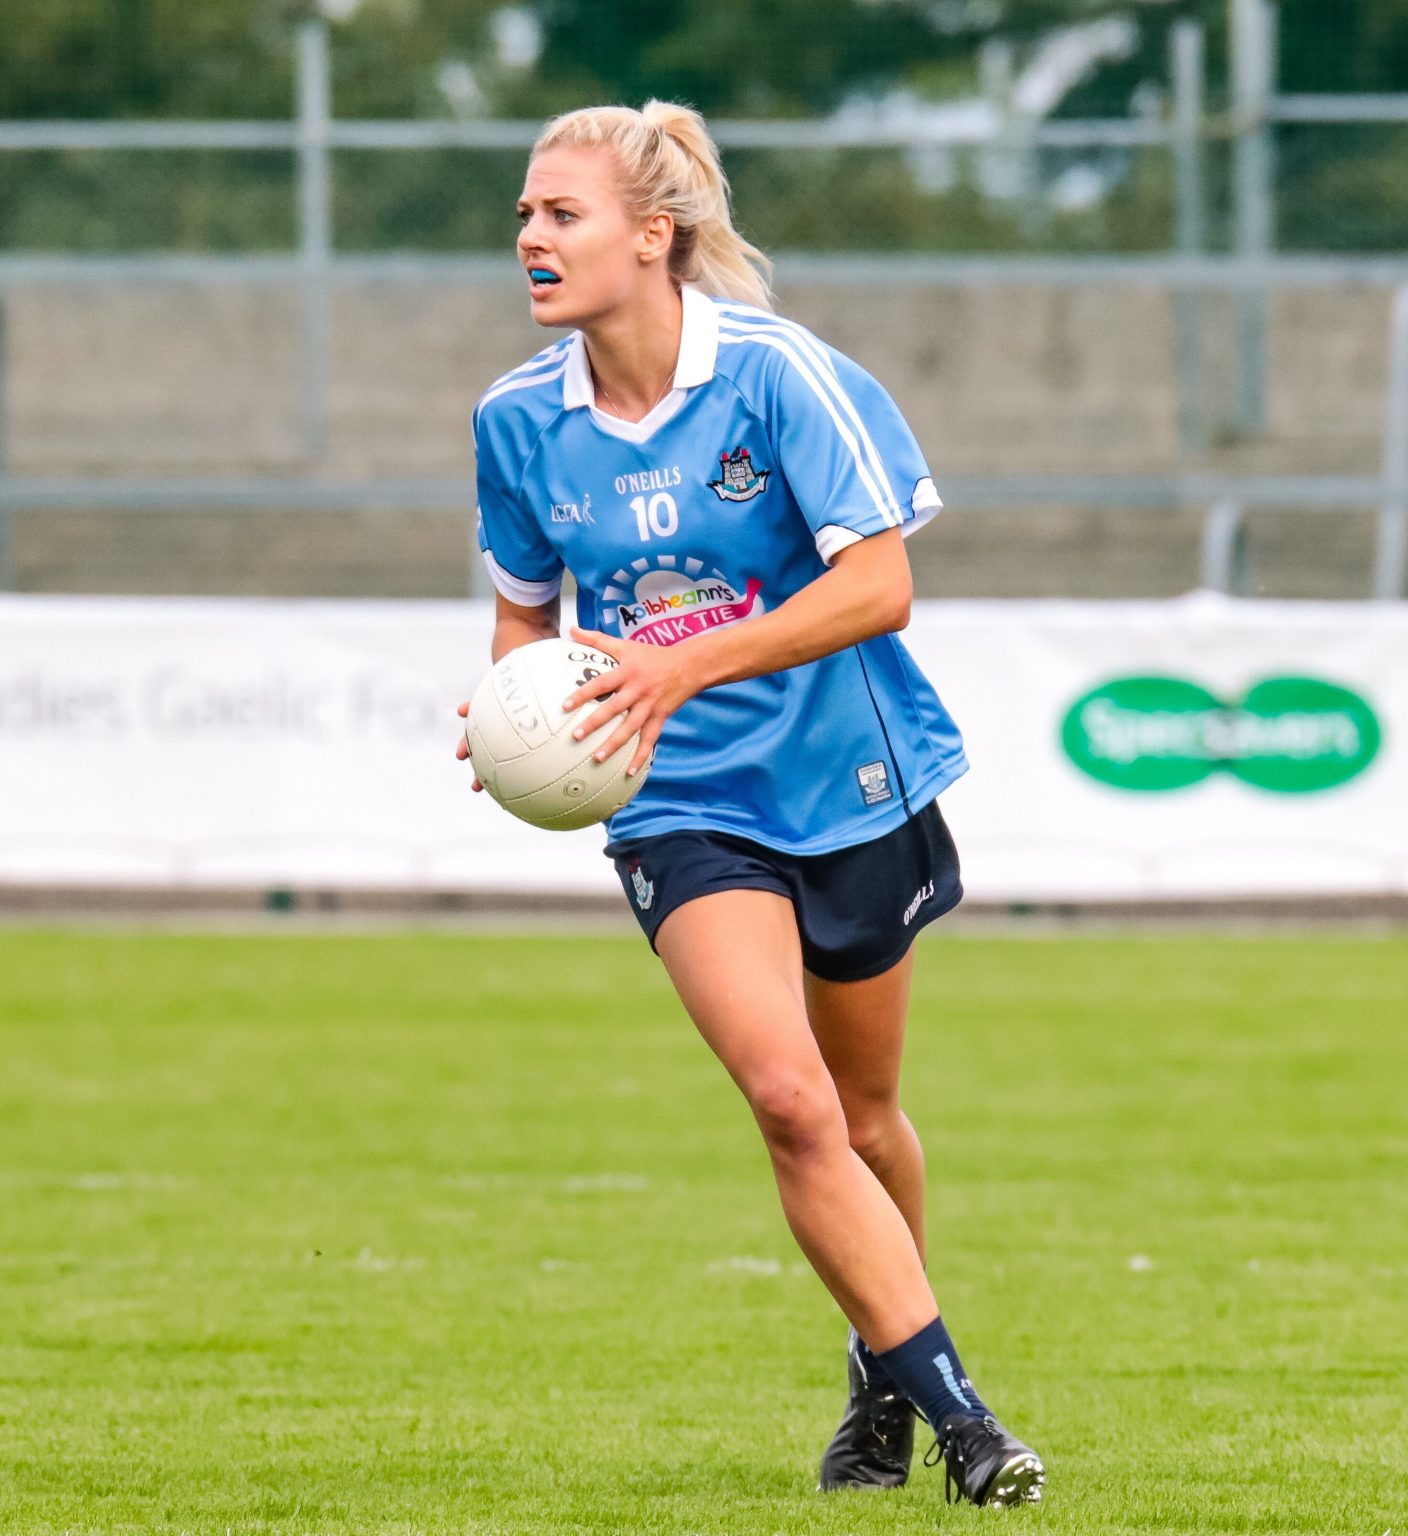 Dublin Ladies Footballer Nicole Owens in a sky blue jersey and navy shorts says Dublin are looking at creating a legacy